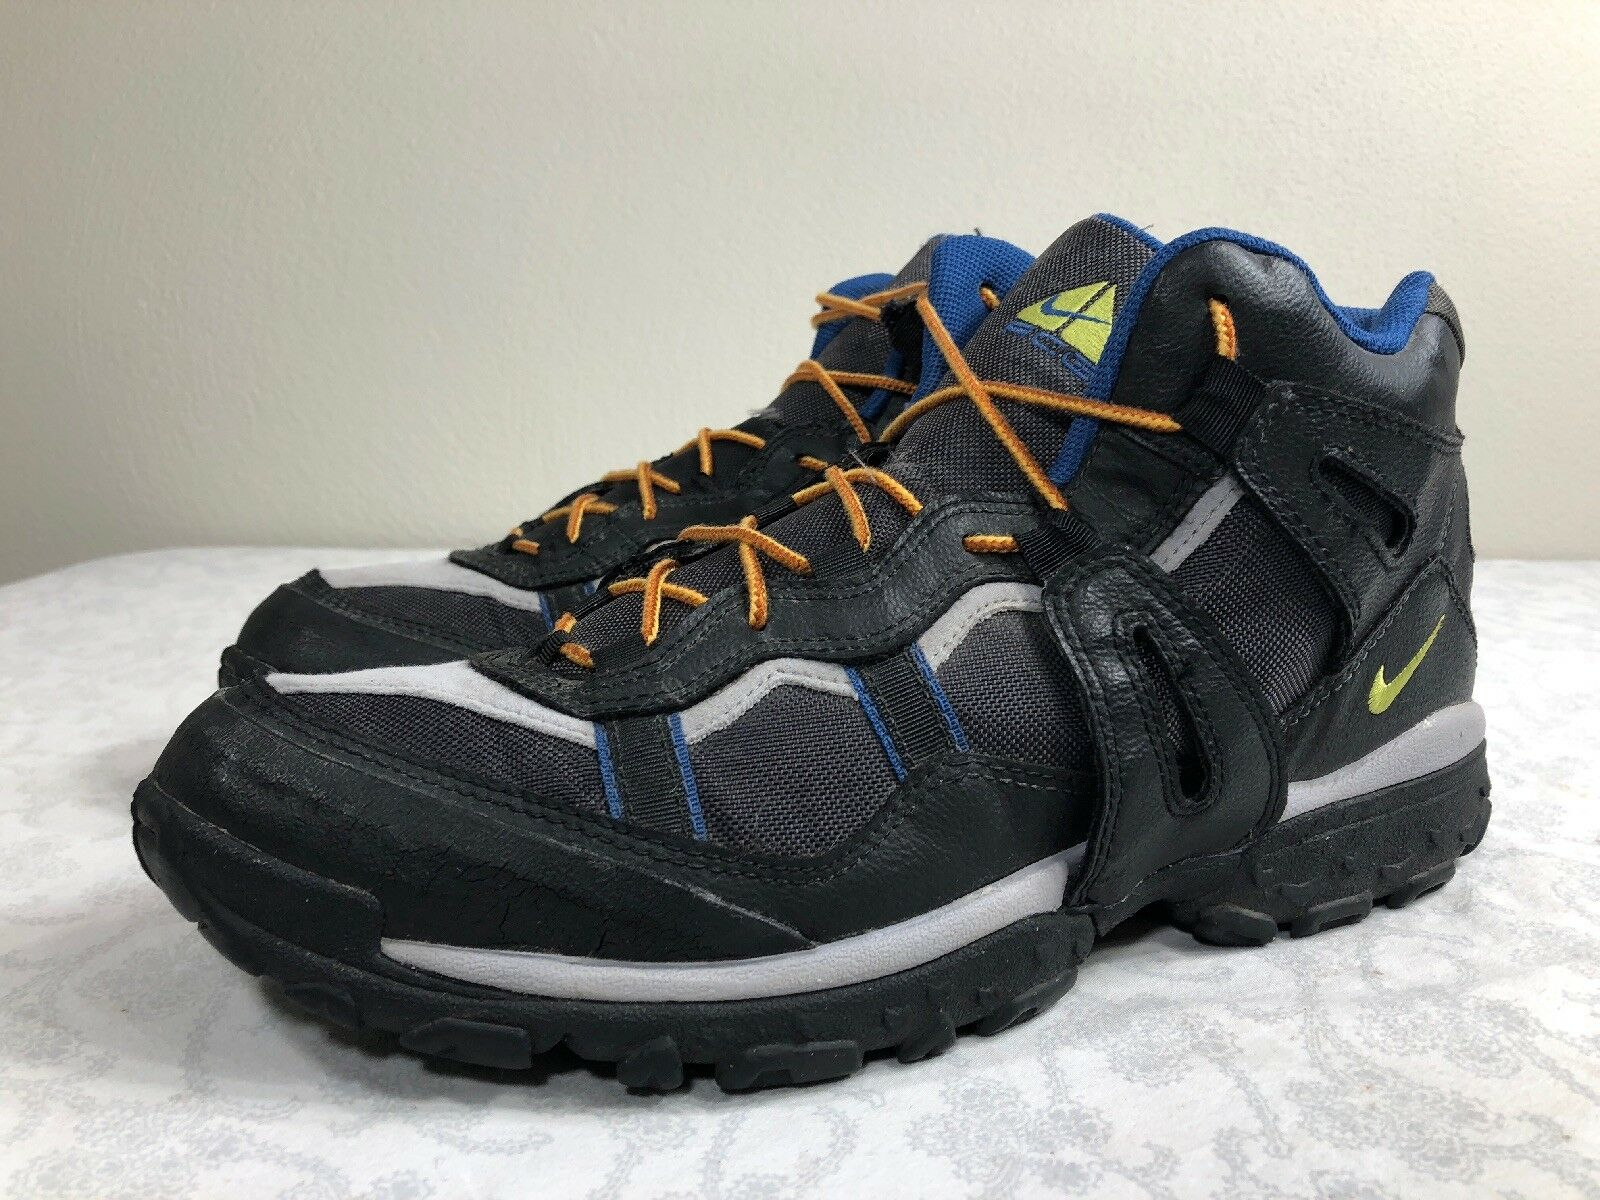 VTG 1997 Nike ACG Boots OG Zoom Air Trail Hiking Athletic Men's 12 Swoosh 90s